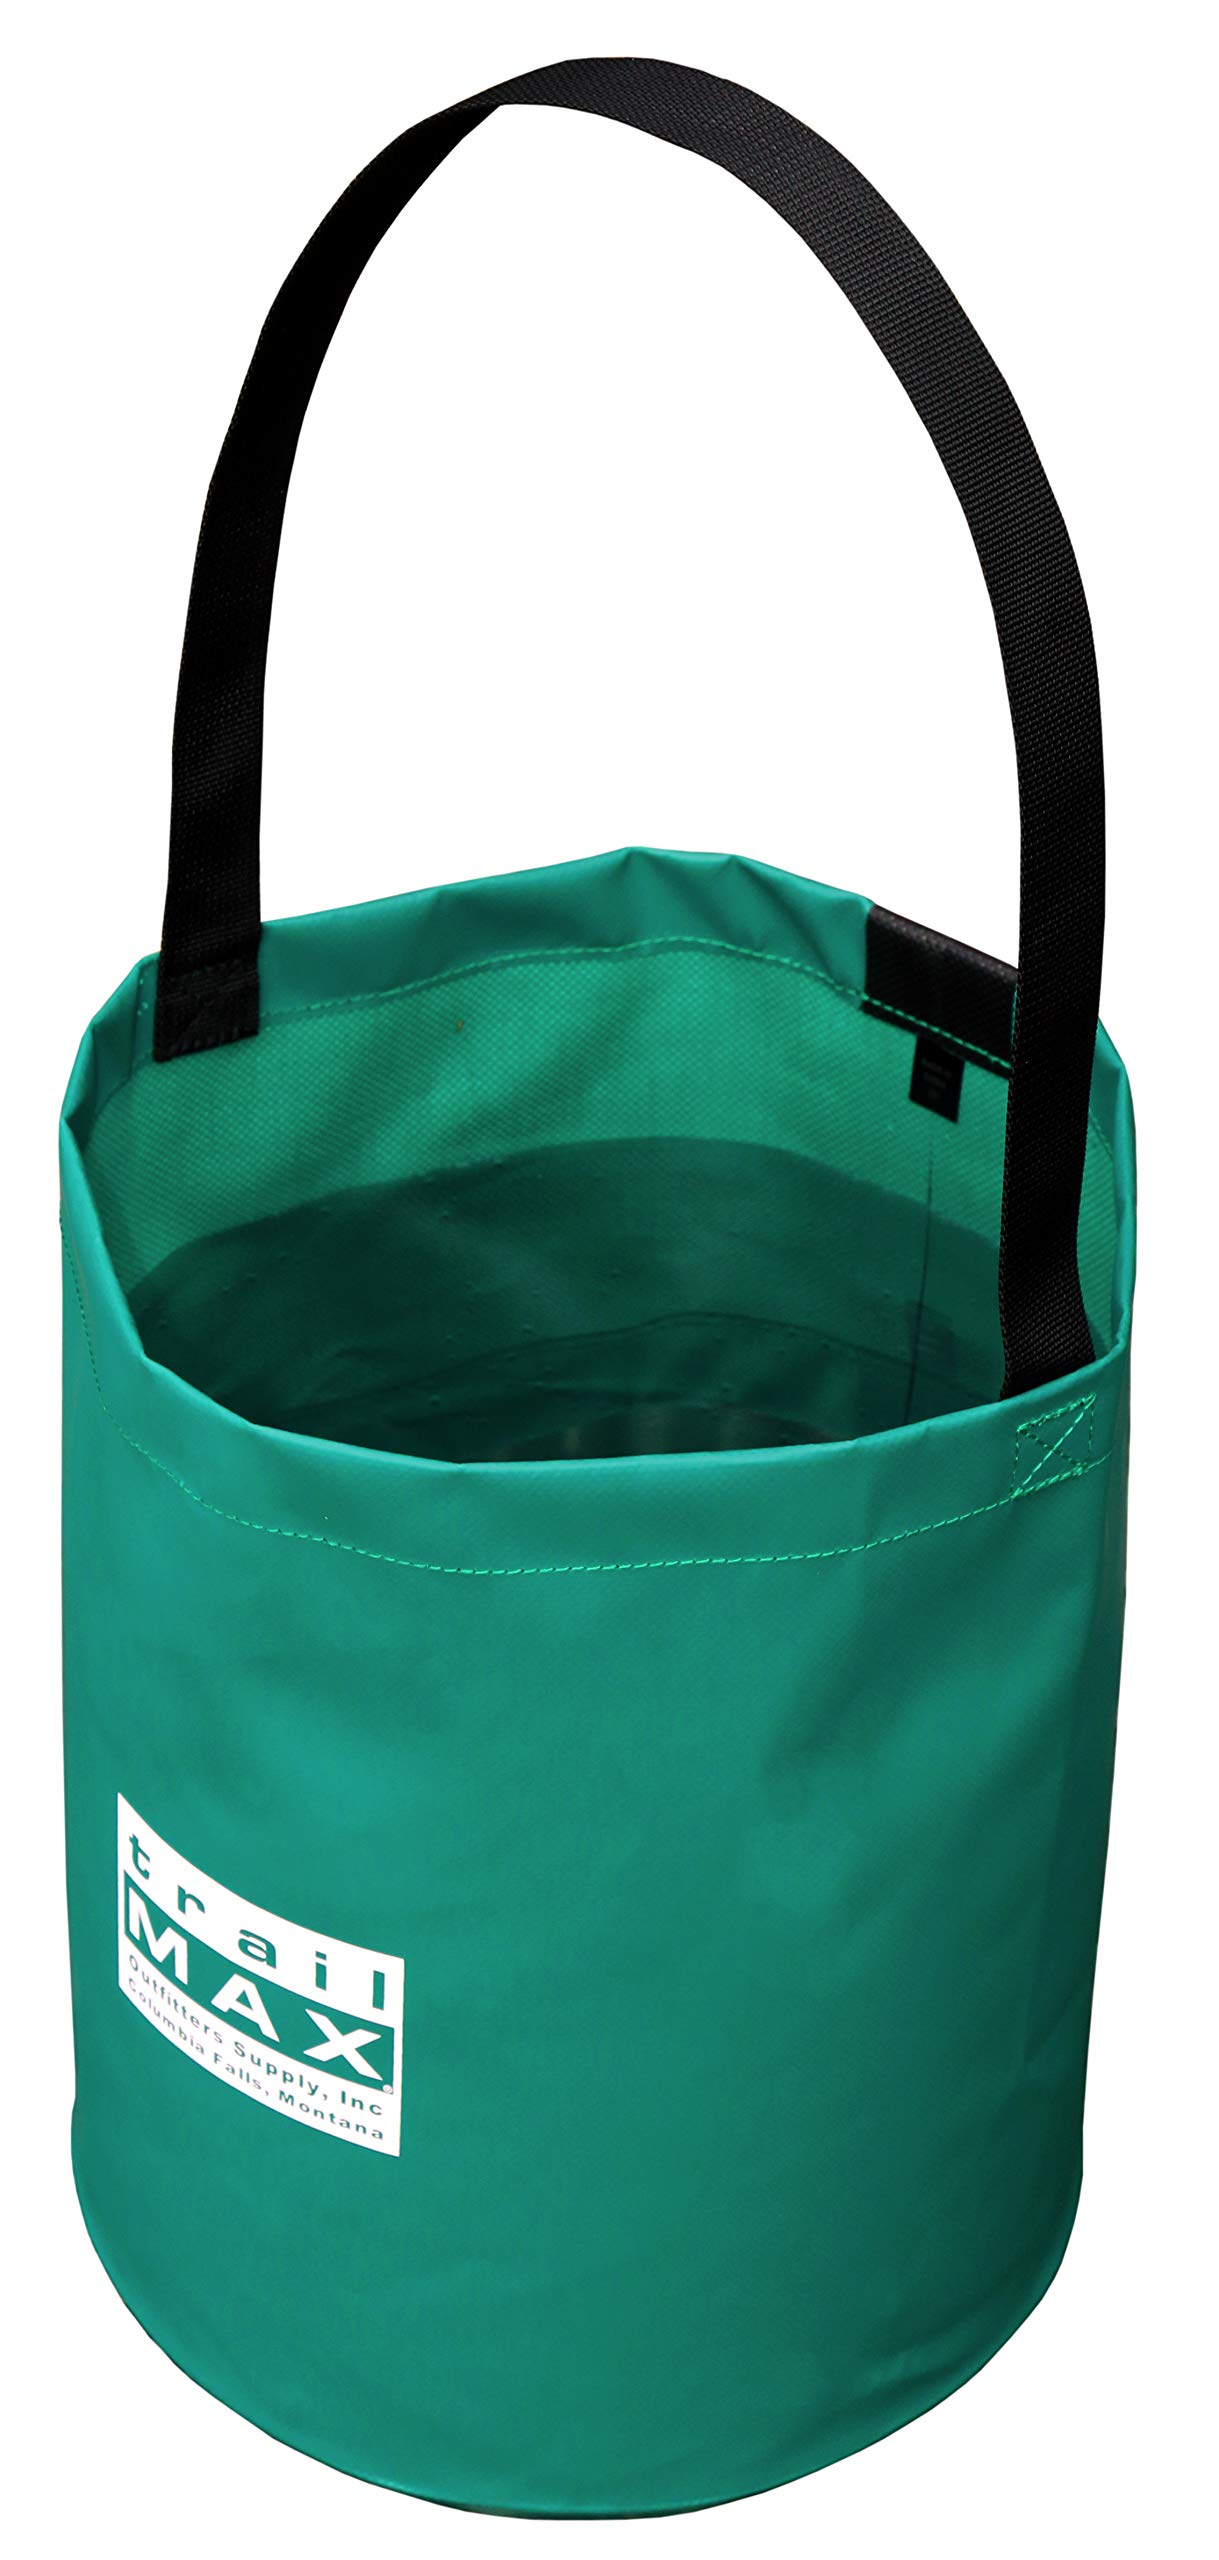 Outfitters Supply 3-Gallon Collapsible Water Bucket, Constructed From Tough Vinyl-Coated Nylon To Eliminate Tears And Leaks, Lightweight And Pack-able, Ideal For Horse And Mule Packing And Camping by Outfitters Supply